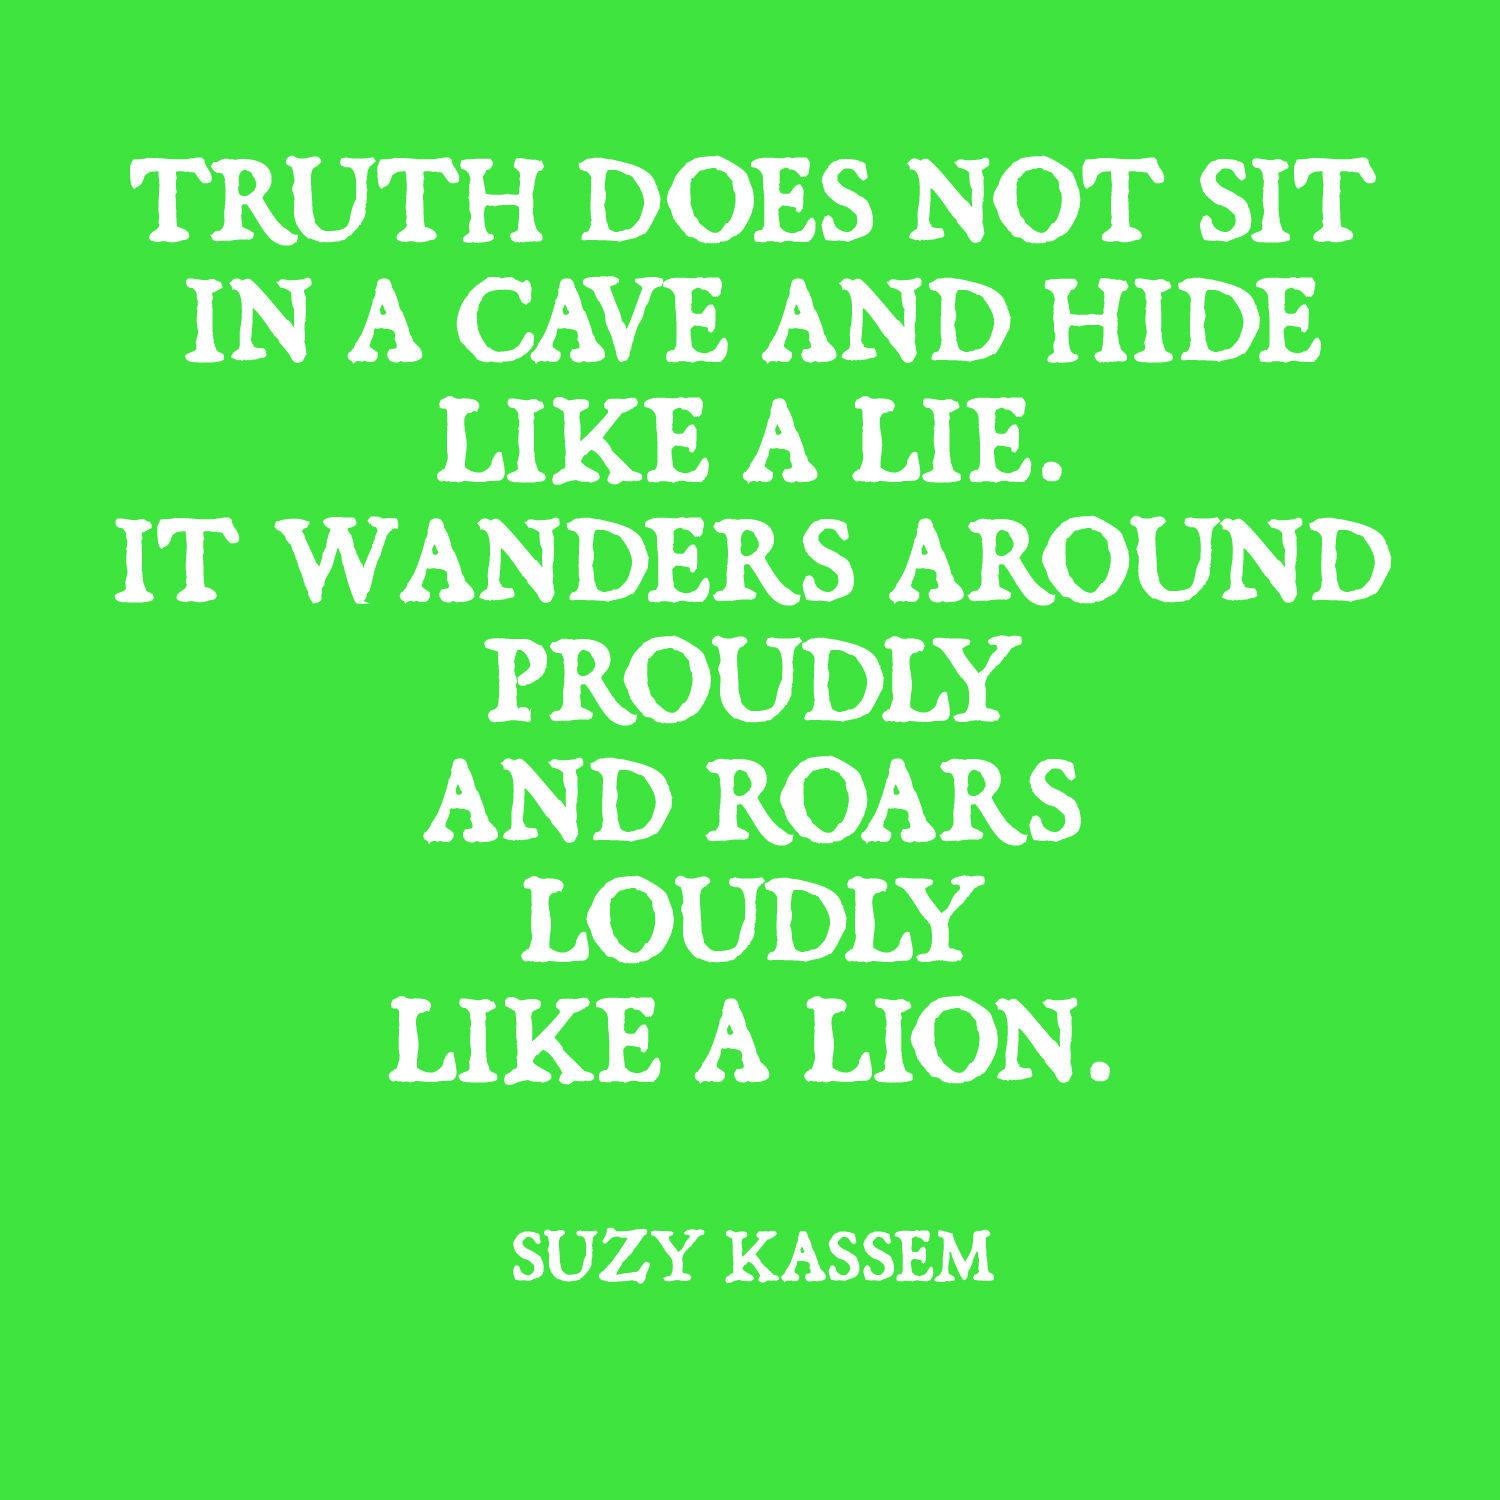 truth does not sit in a cave and hide like a lie life ...